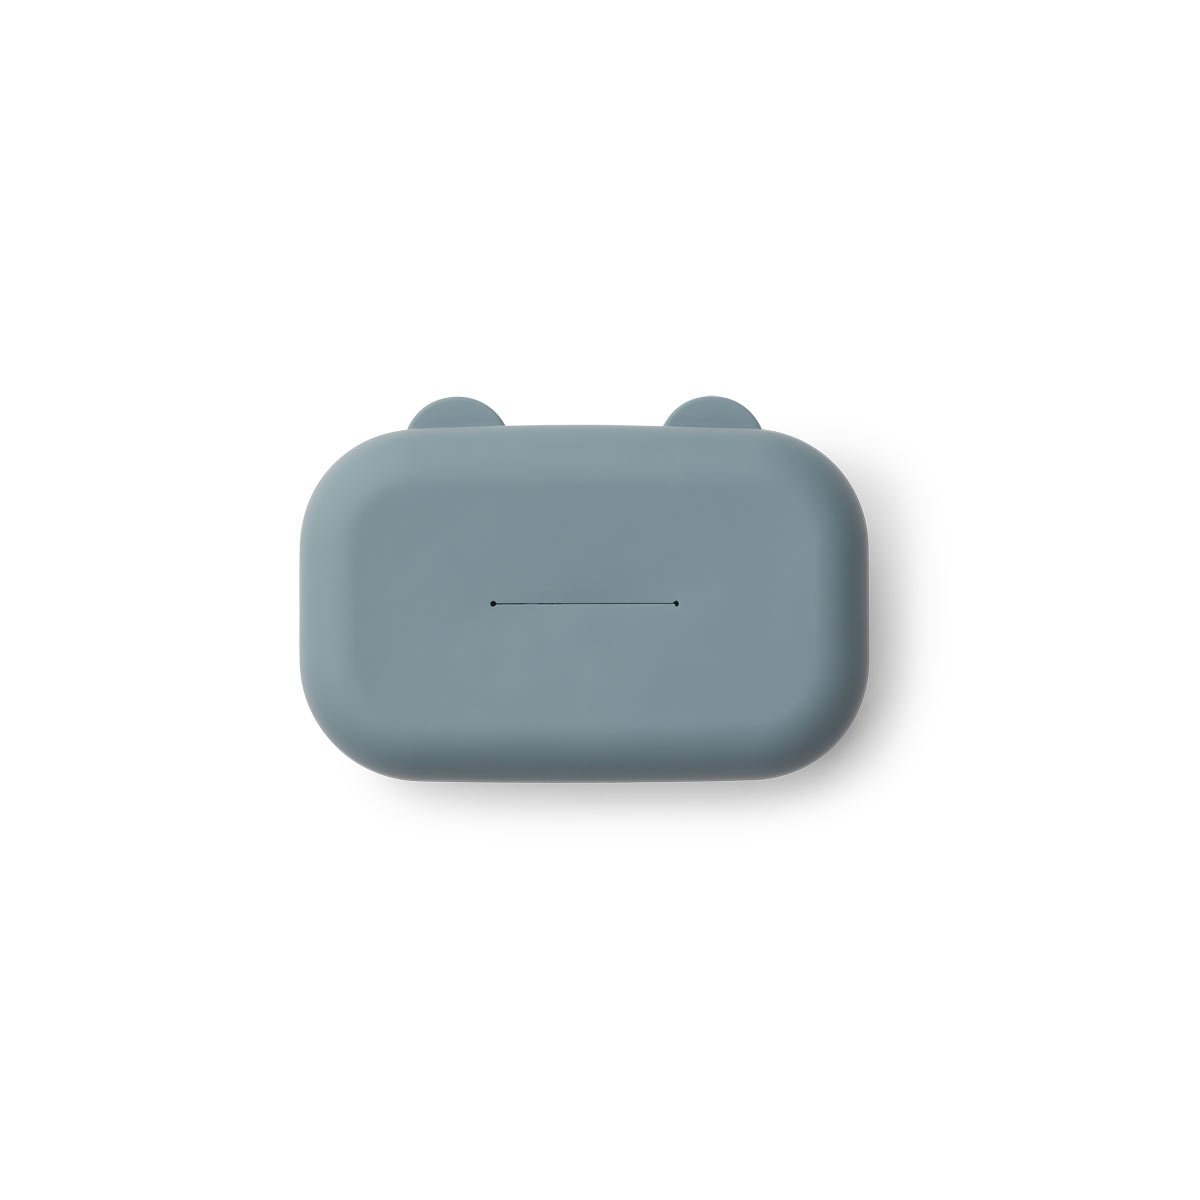 Emi wet wipes cover-3